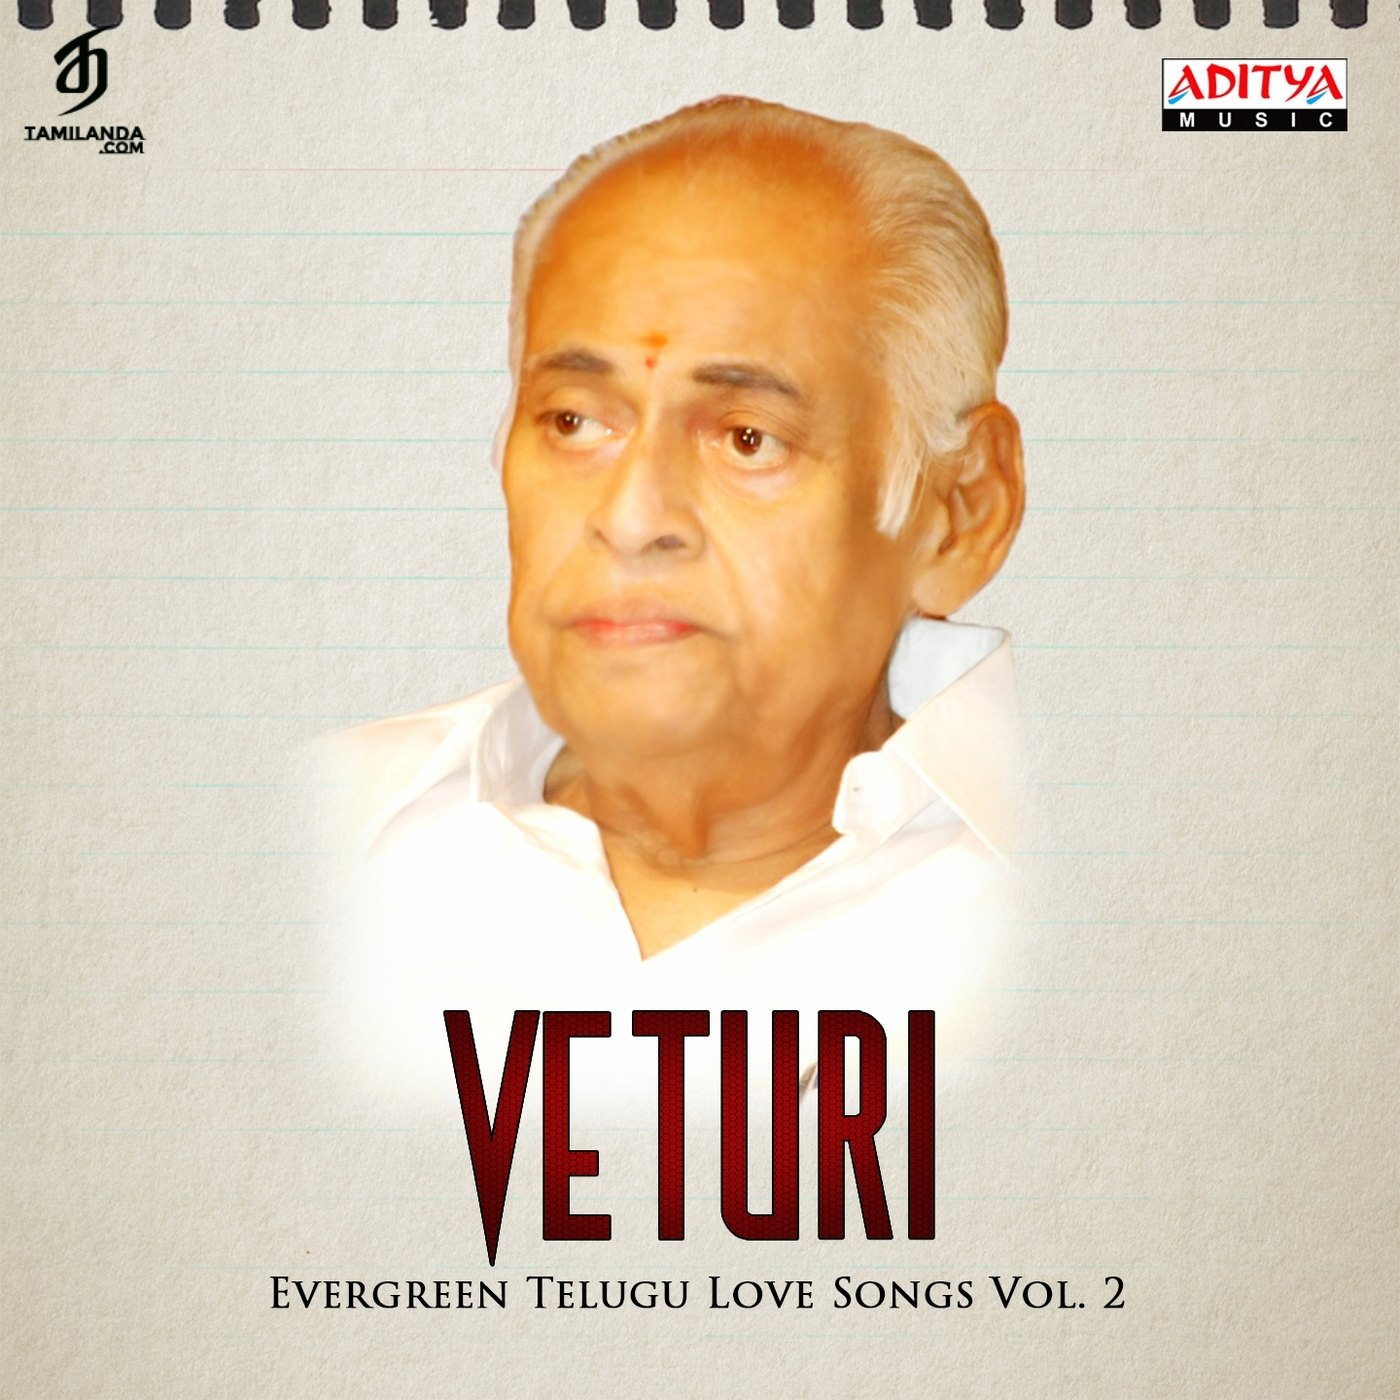 Veturi – Evergreen Telugu Love Songs, Vol. 2 FLAC Songs